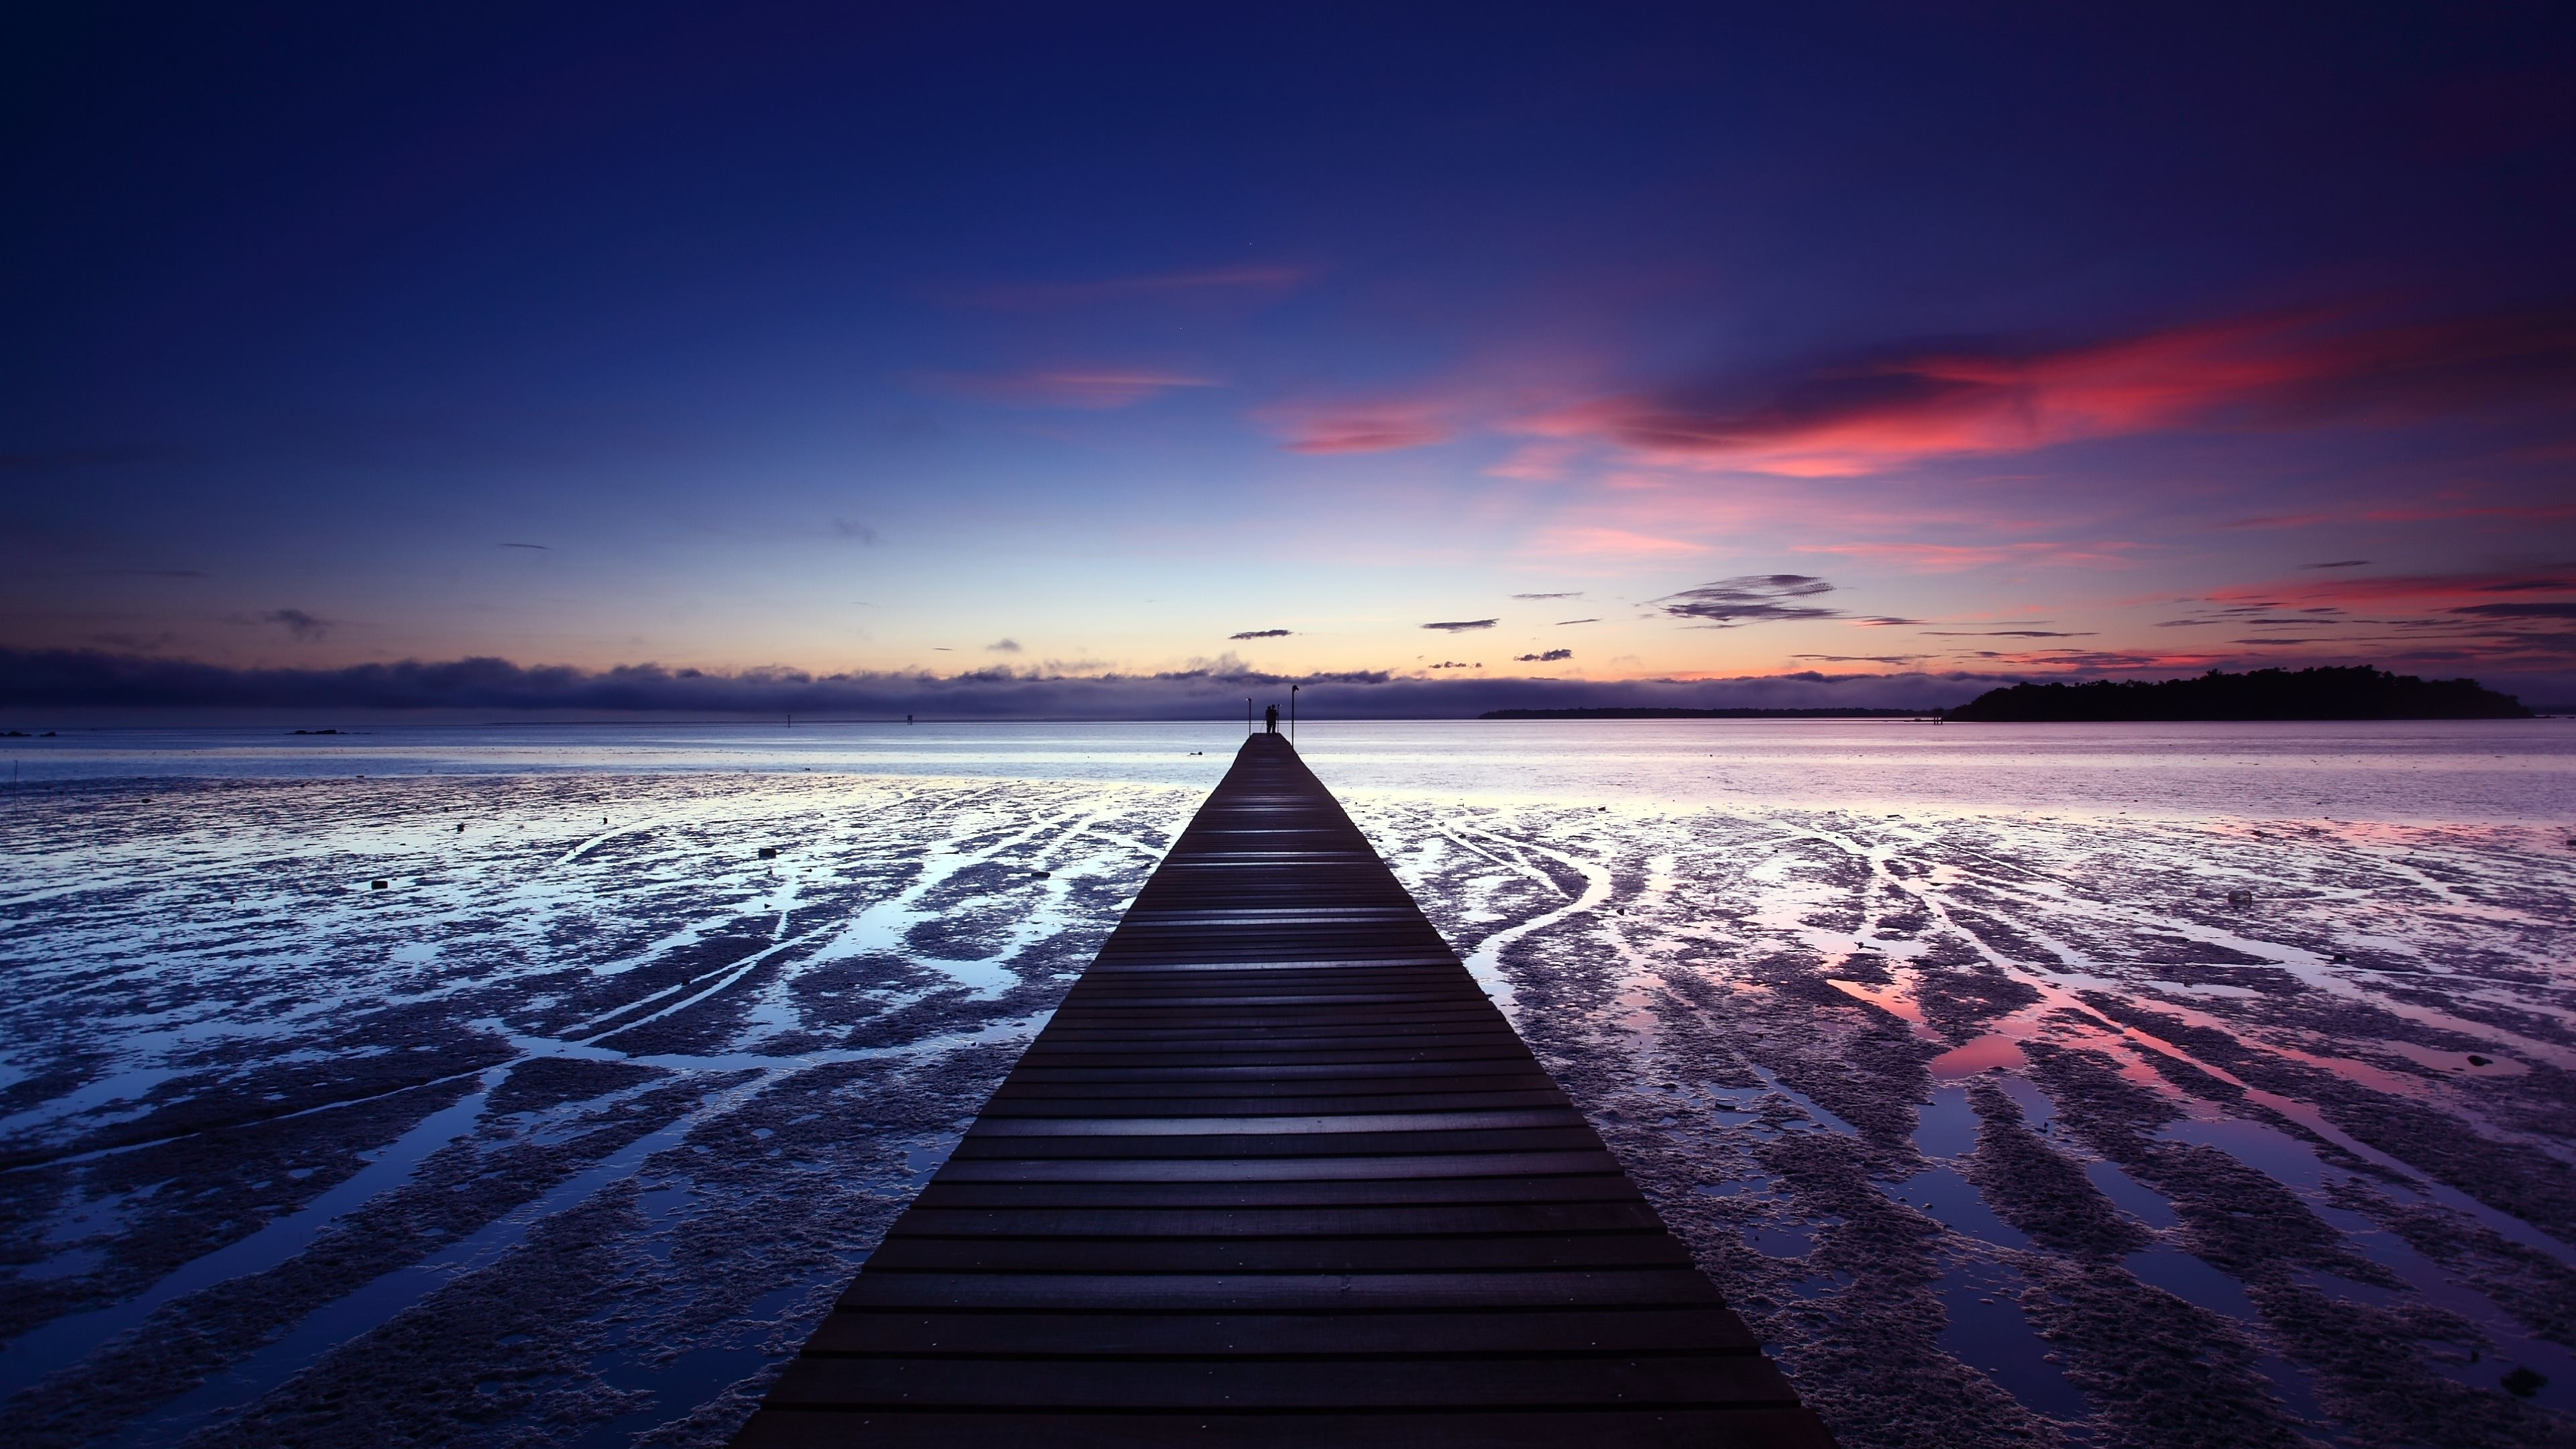 Bridge to Heaven uhd wallpapers – Ultra High Definition Wallpapers .